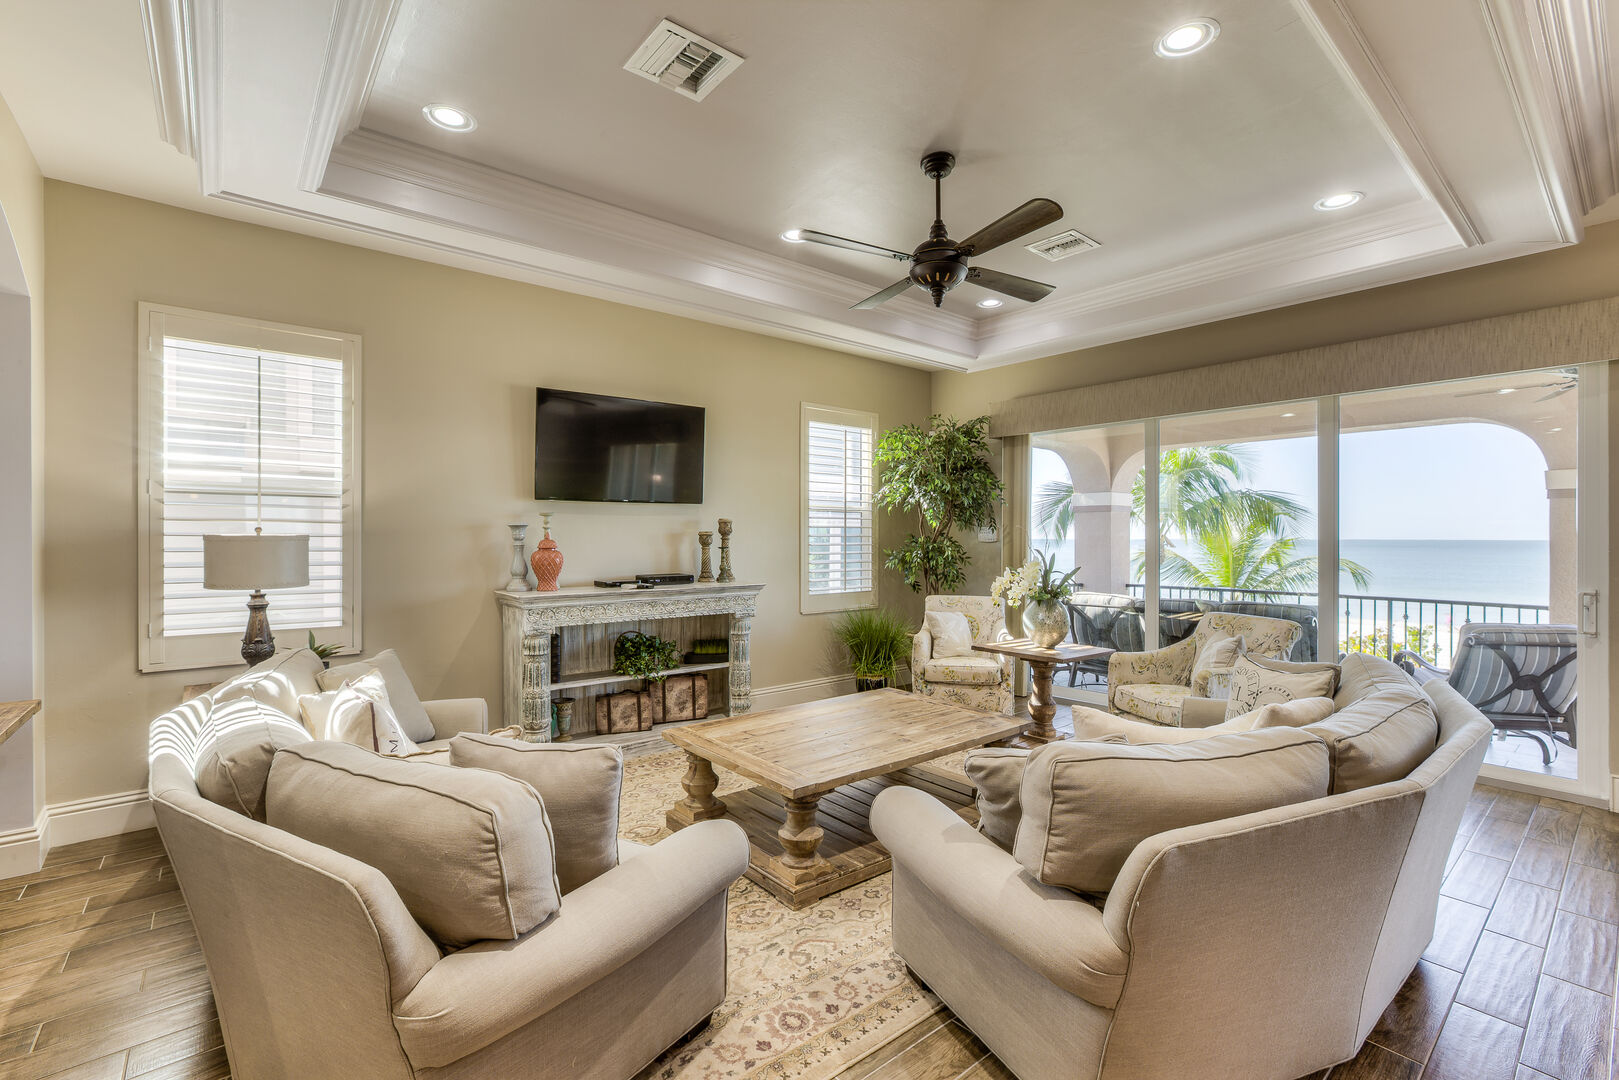 Living area with couches and TV in our Fort Myers vacation home rental